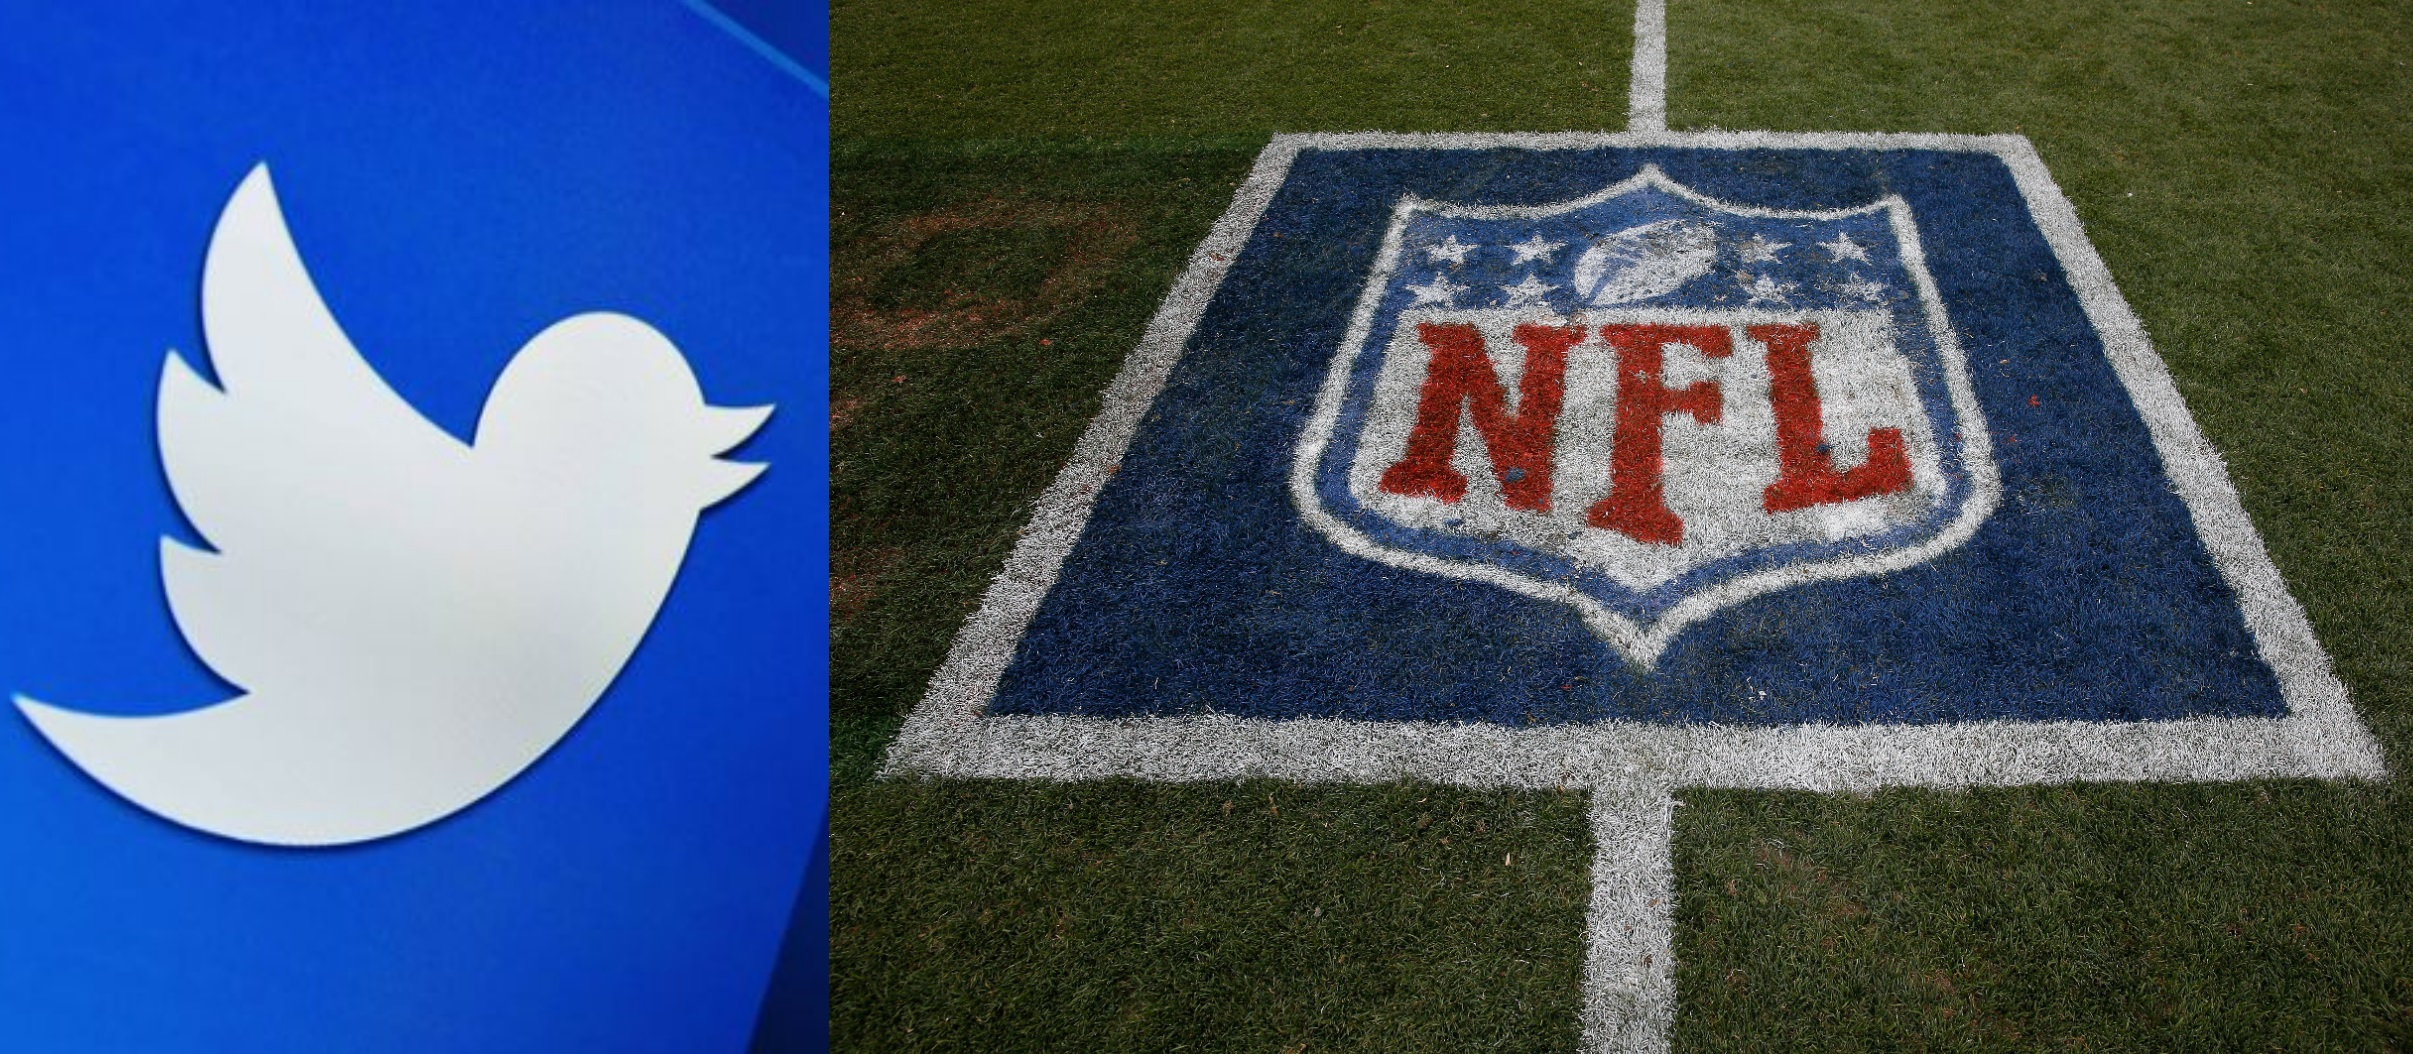 watch nfl live stream free nfl thursday night score